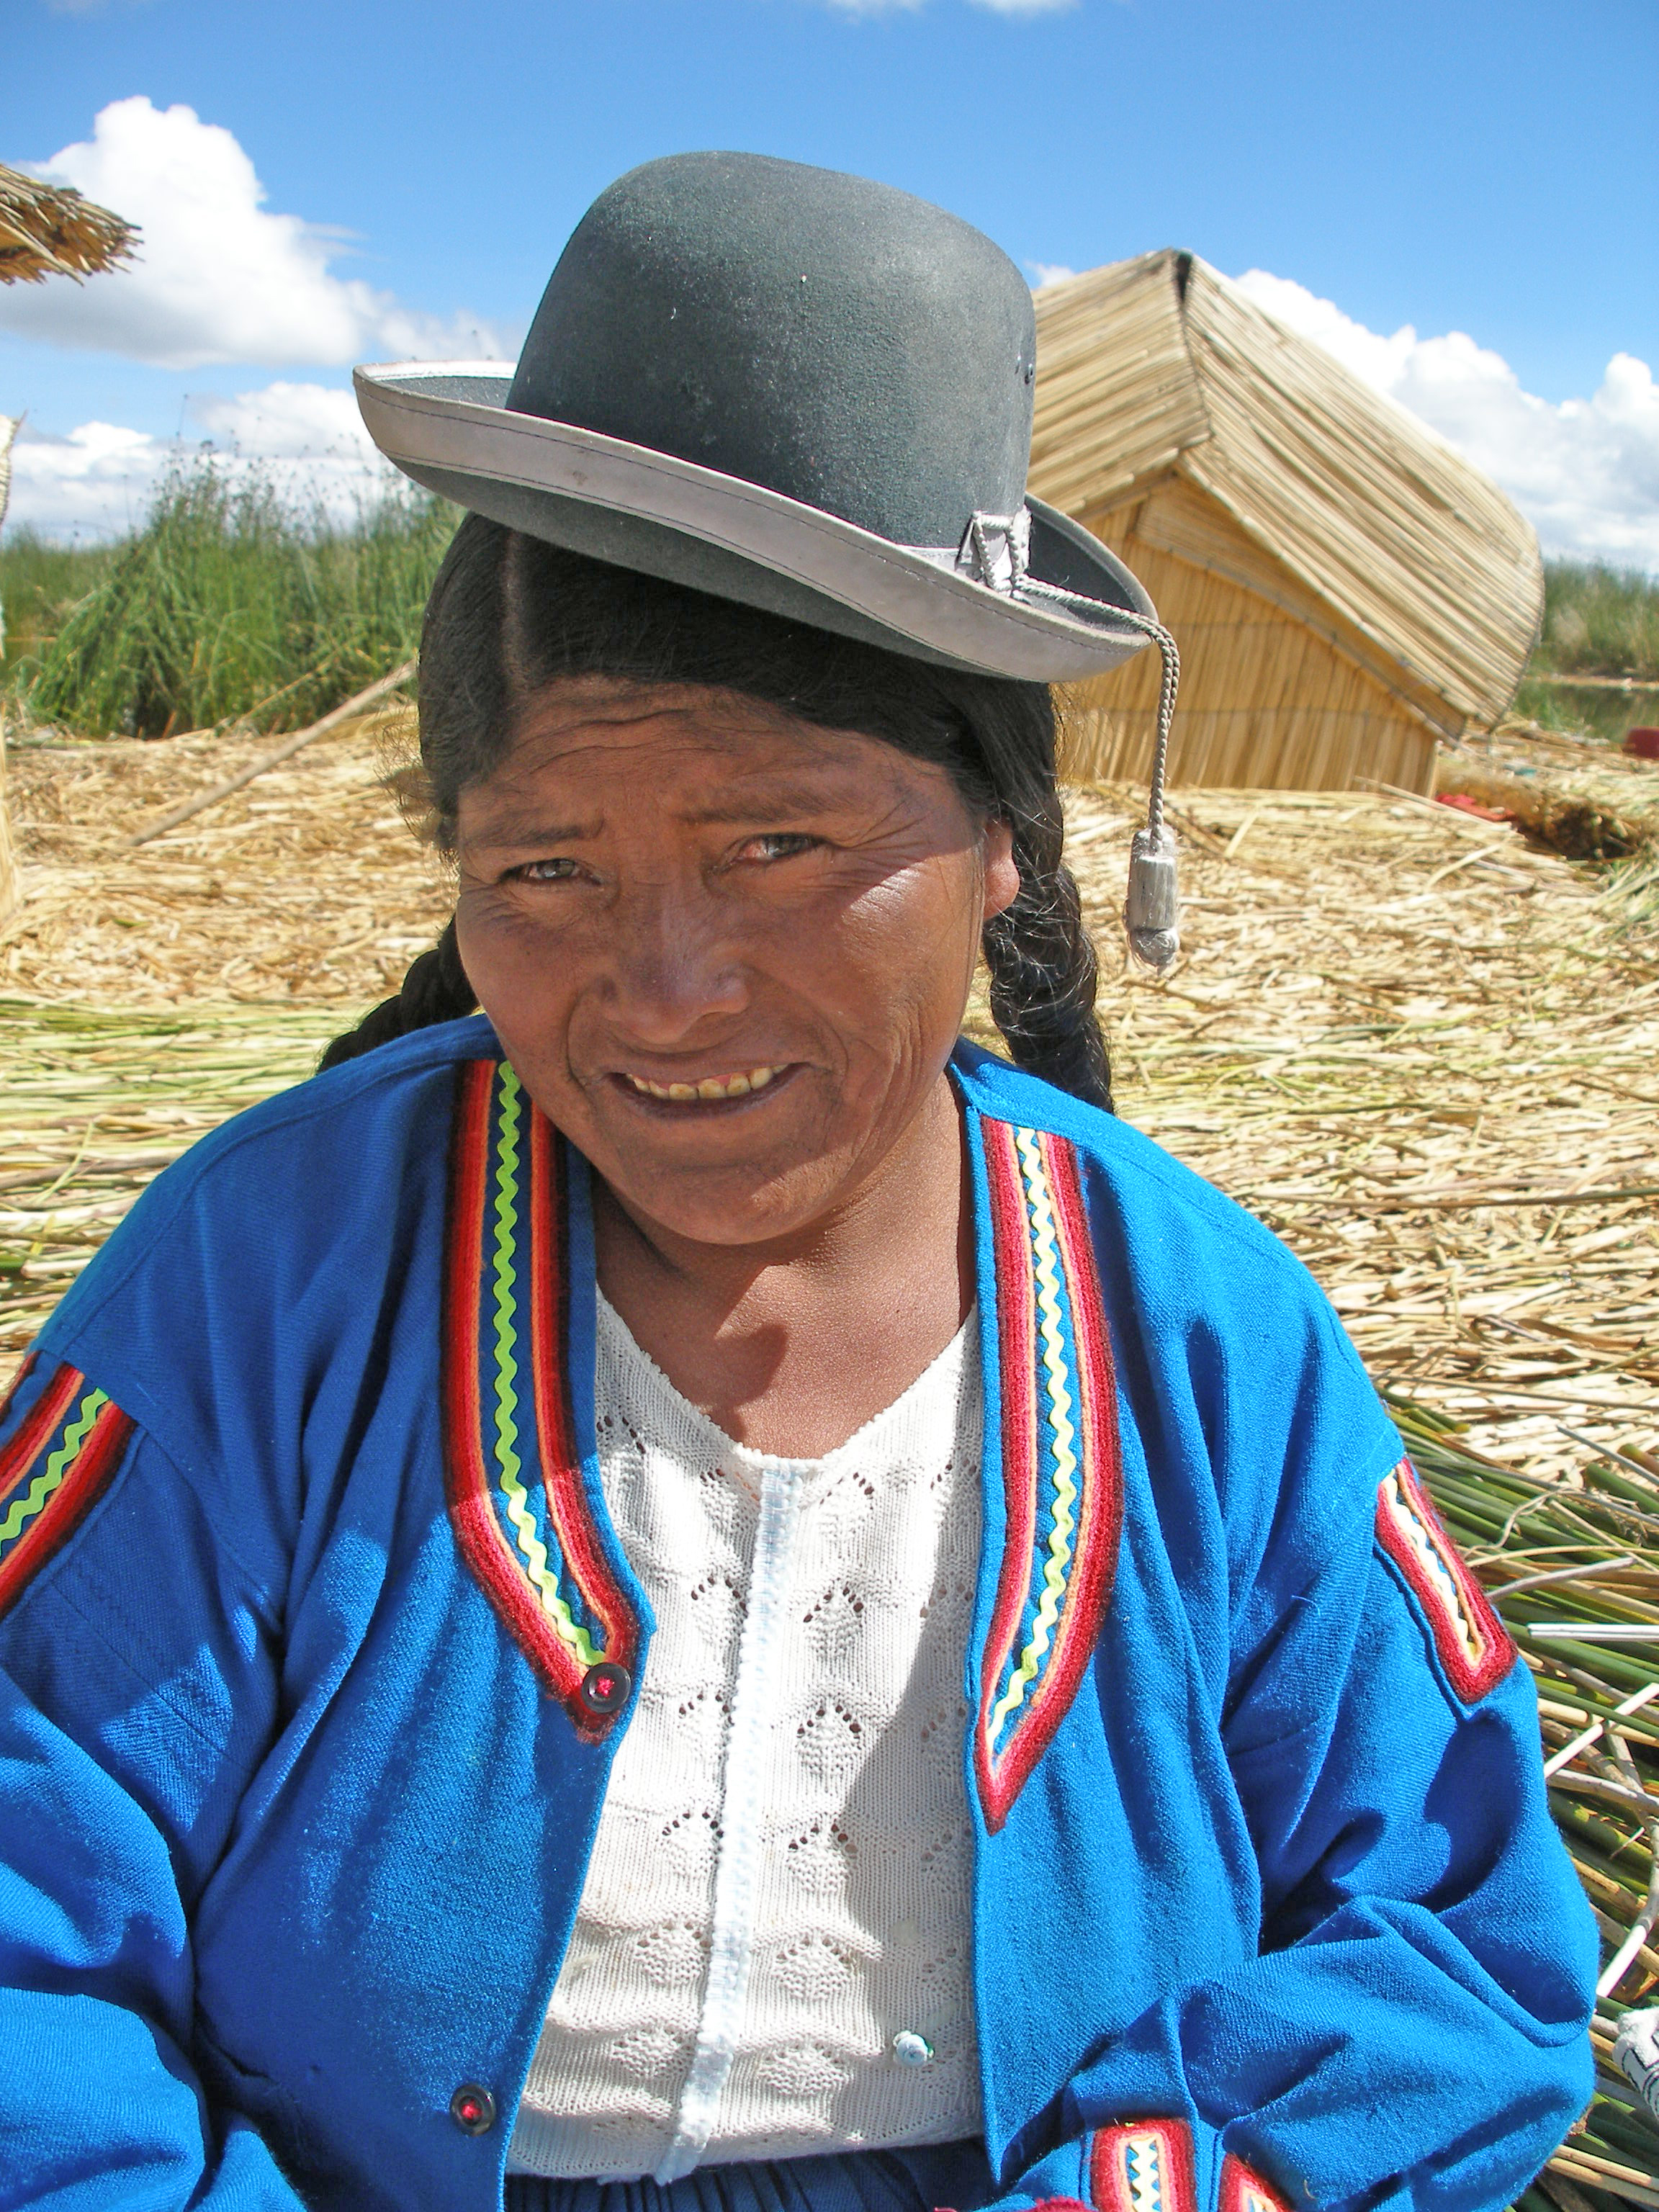 File Uros Islands Peru Woman Jpg Wikimedia Commons